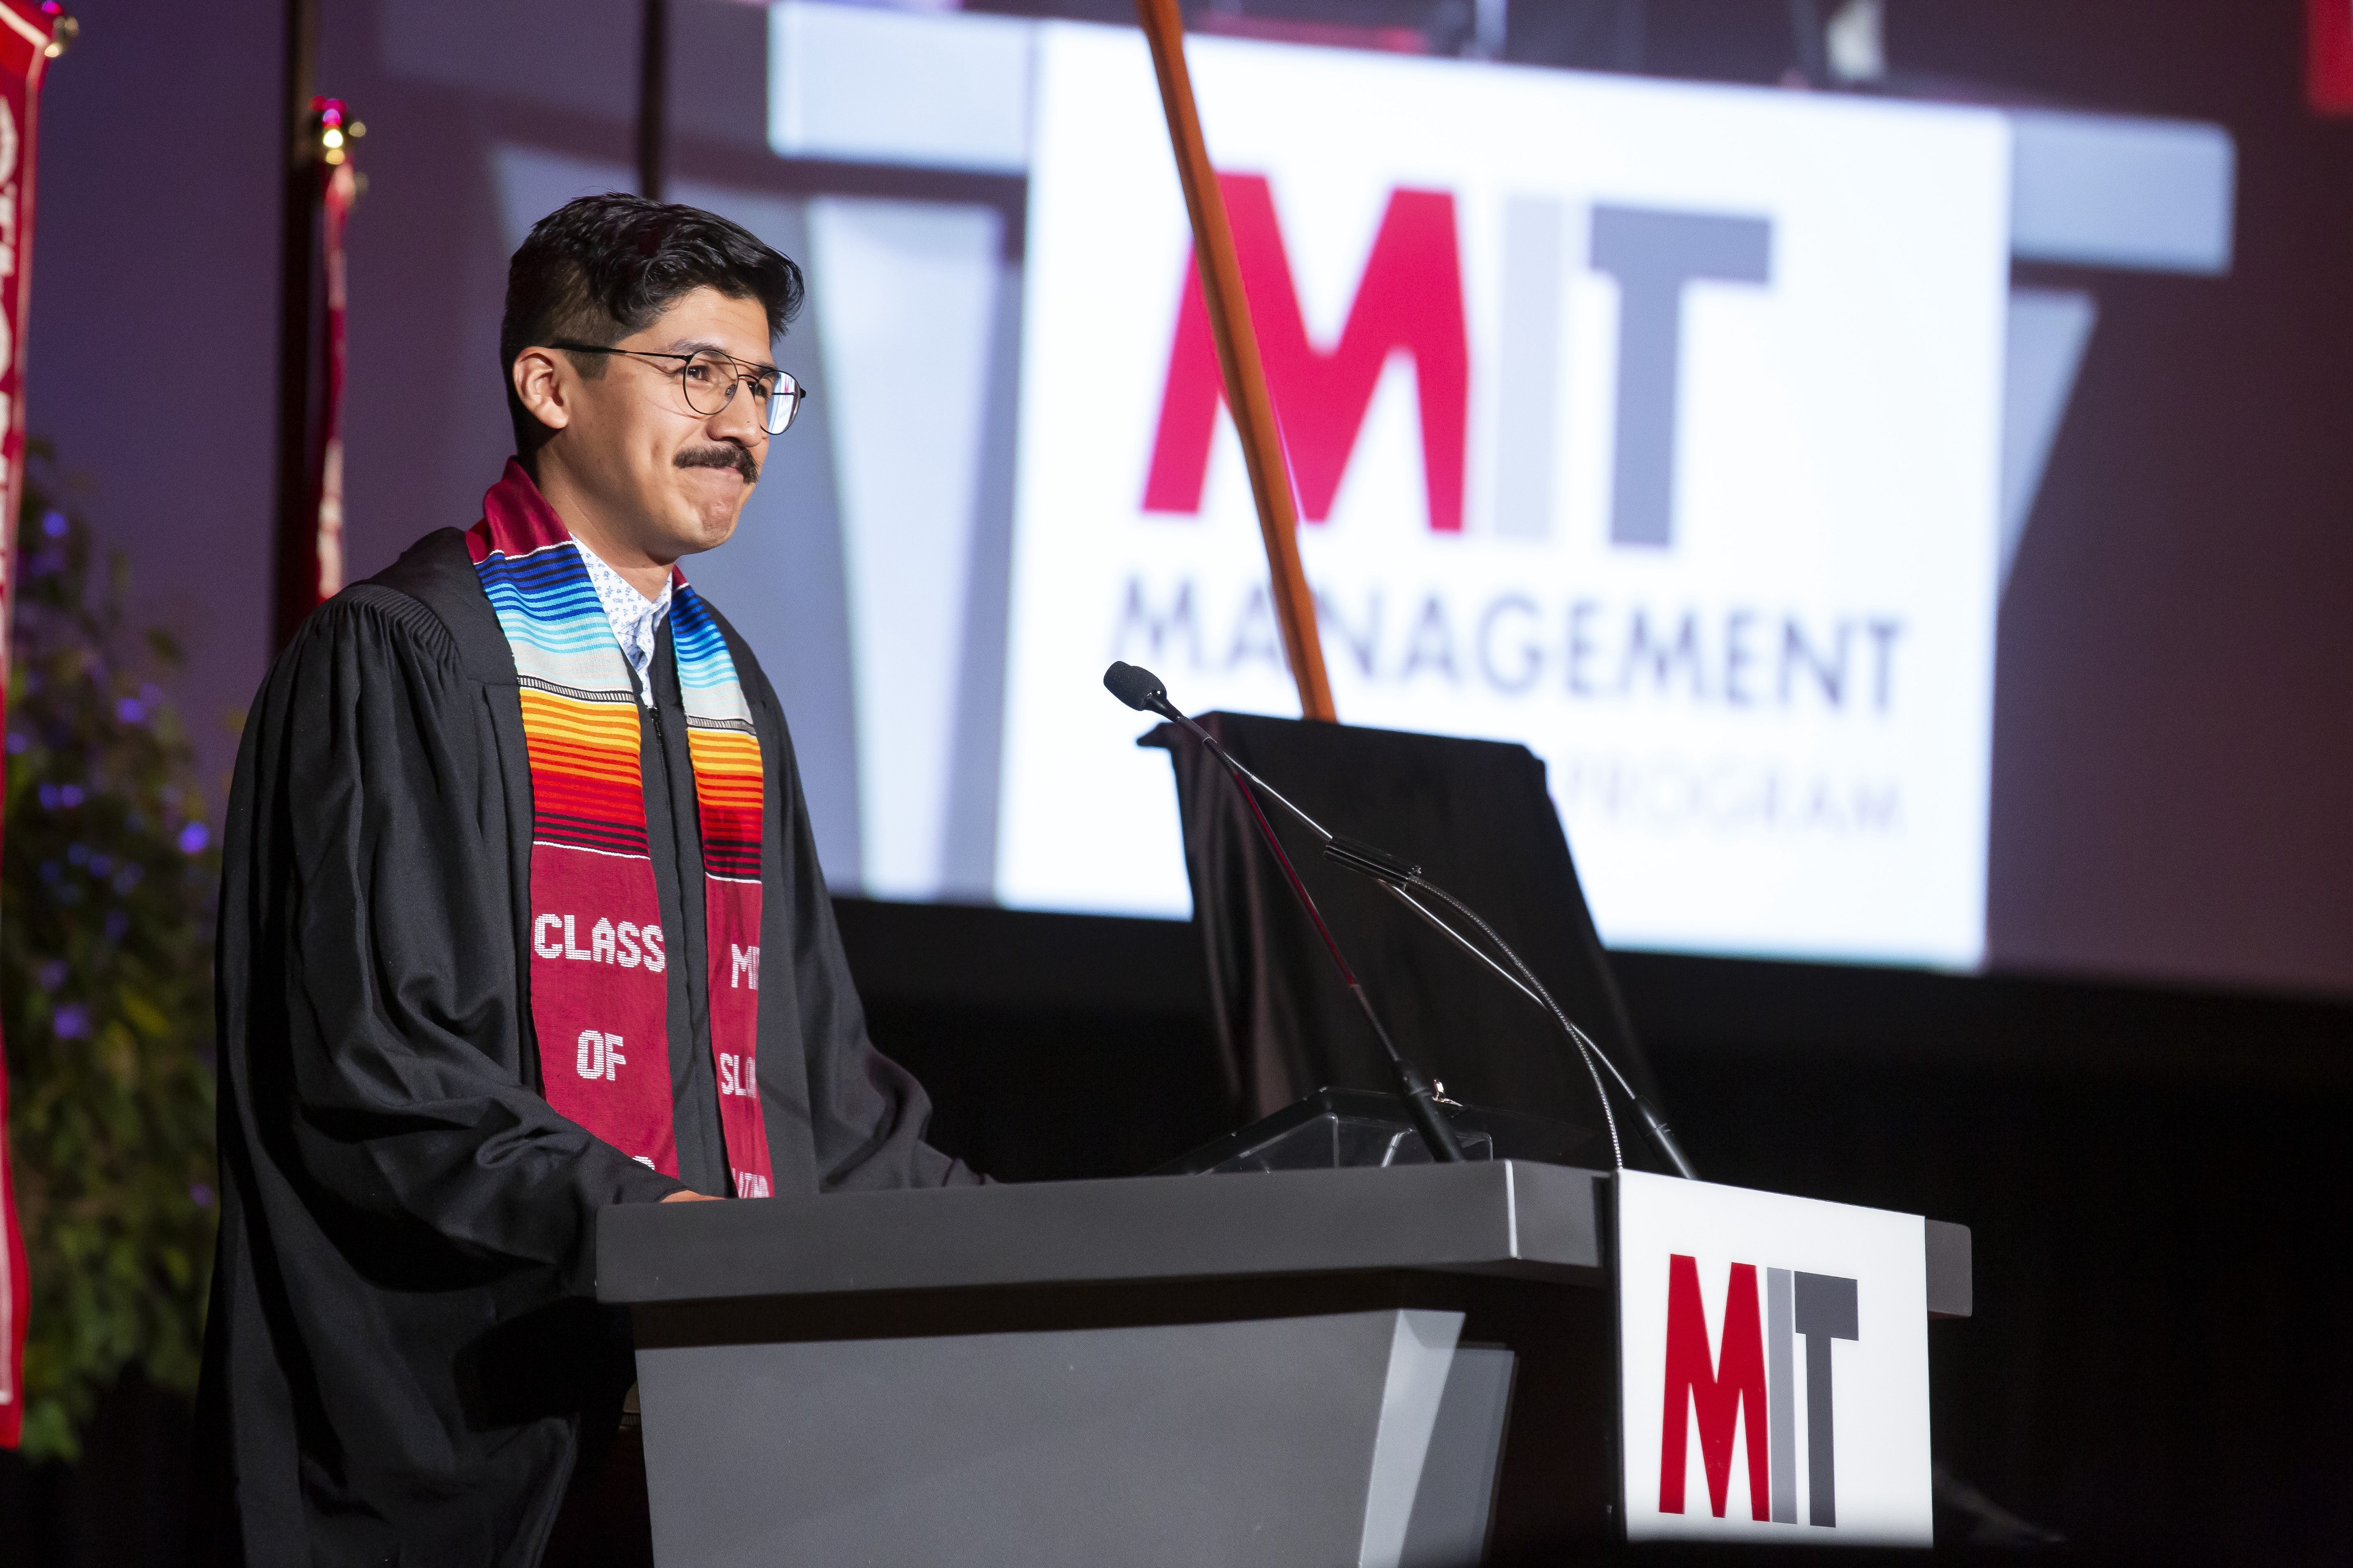 Delivering the MIT Sloan MBA 2019 Convocation Speech*